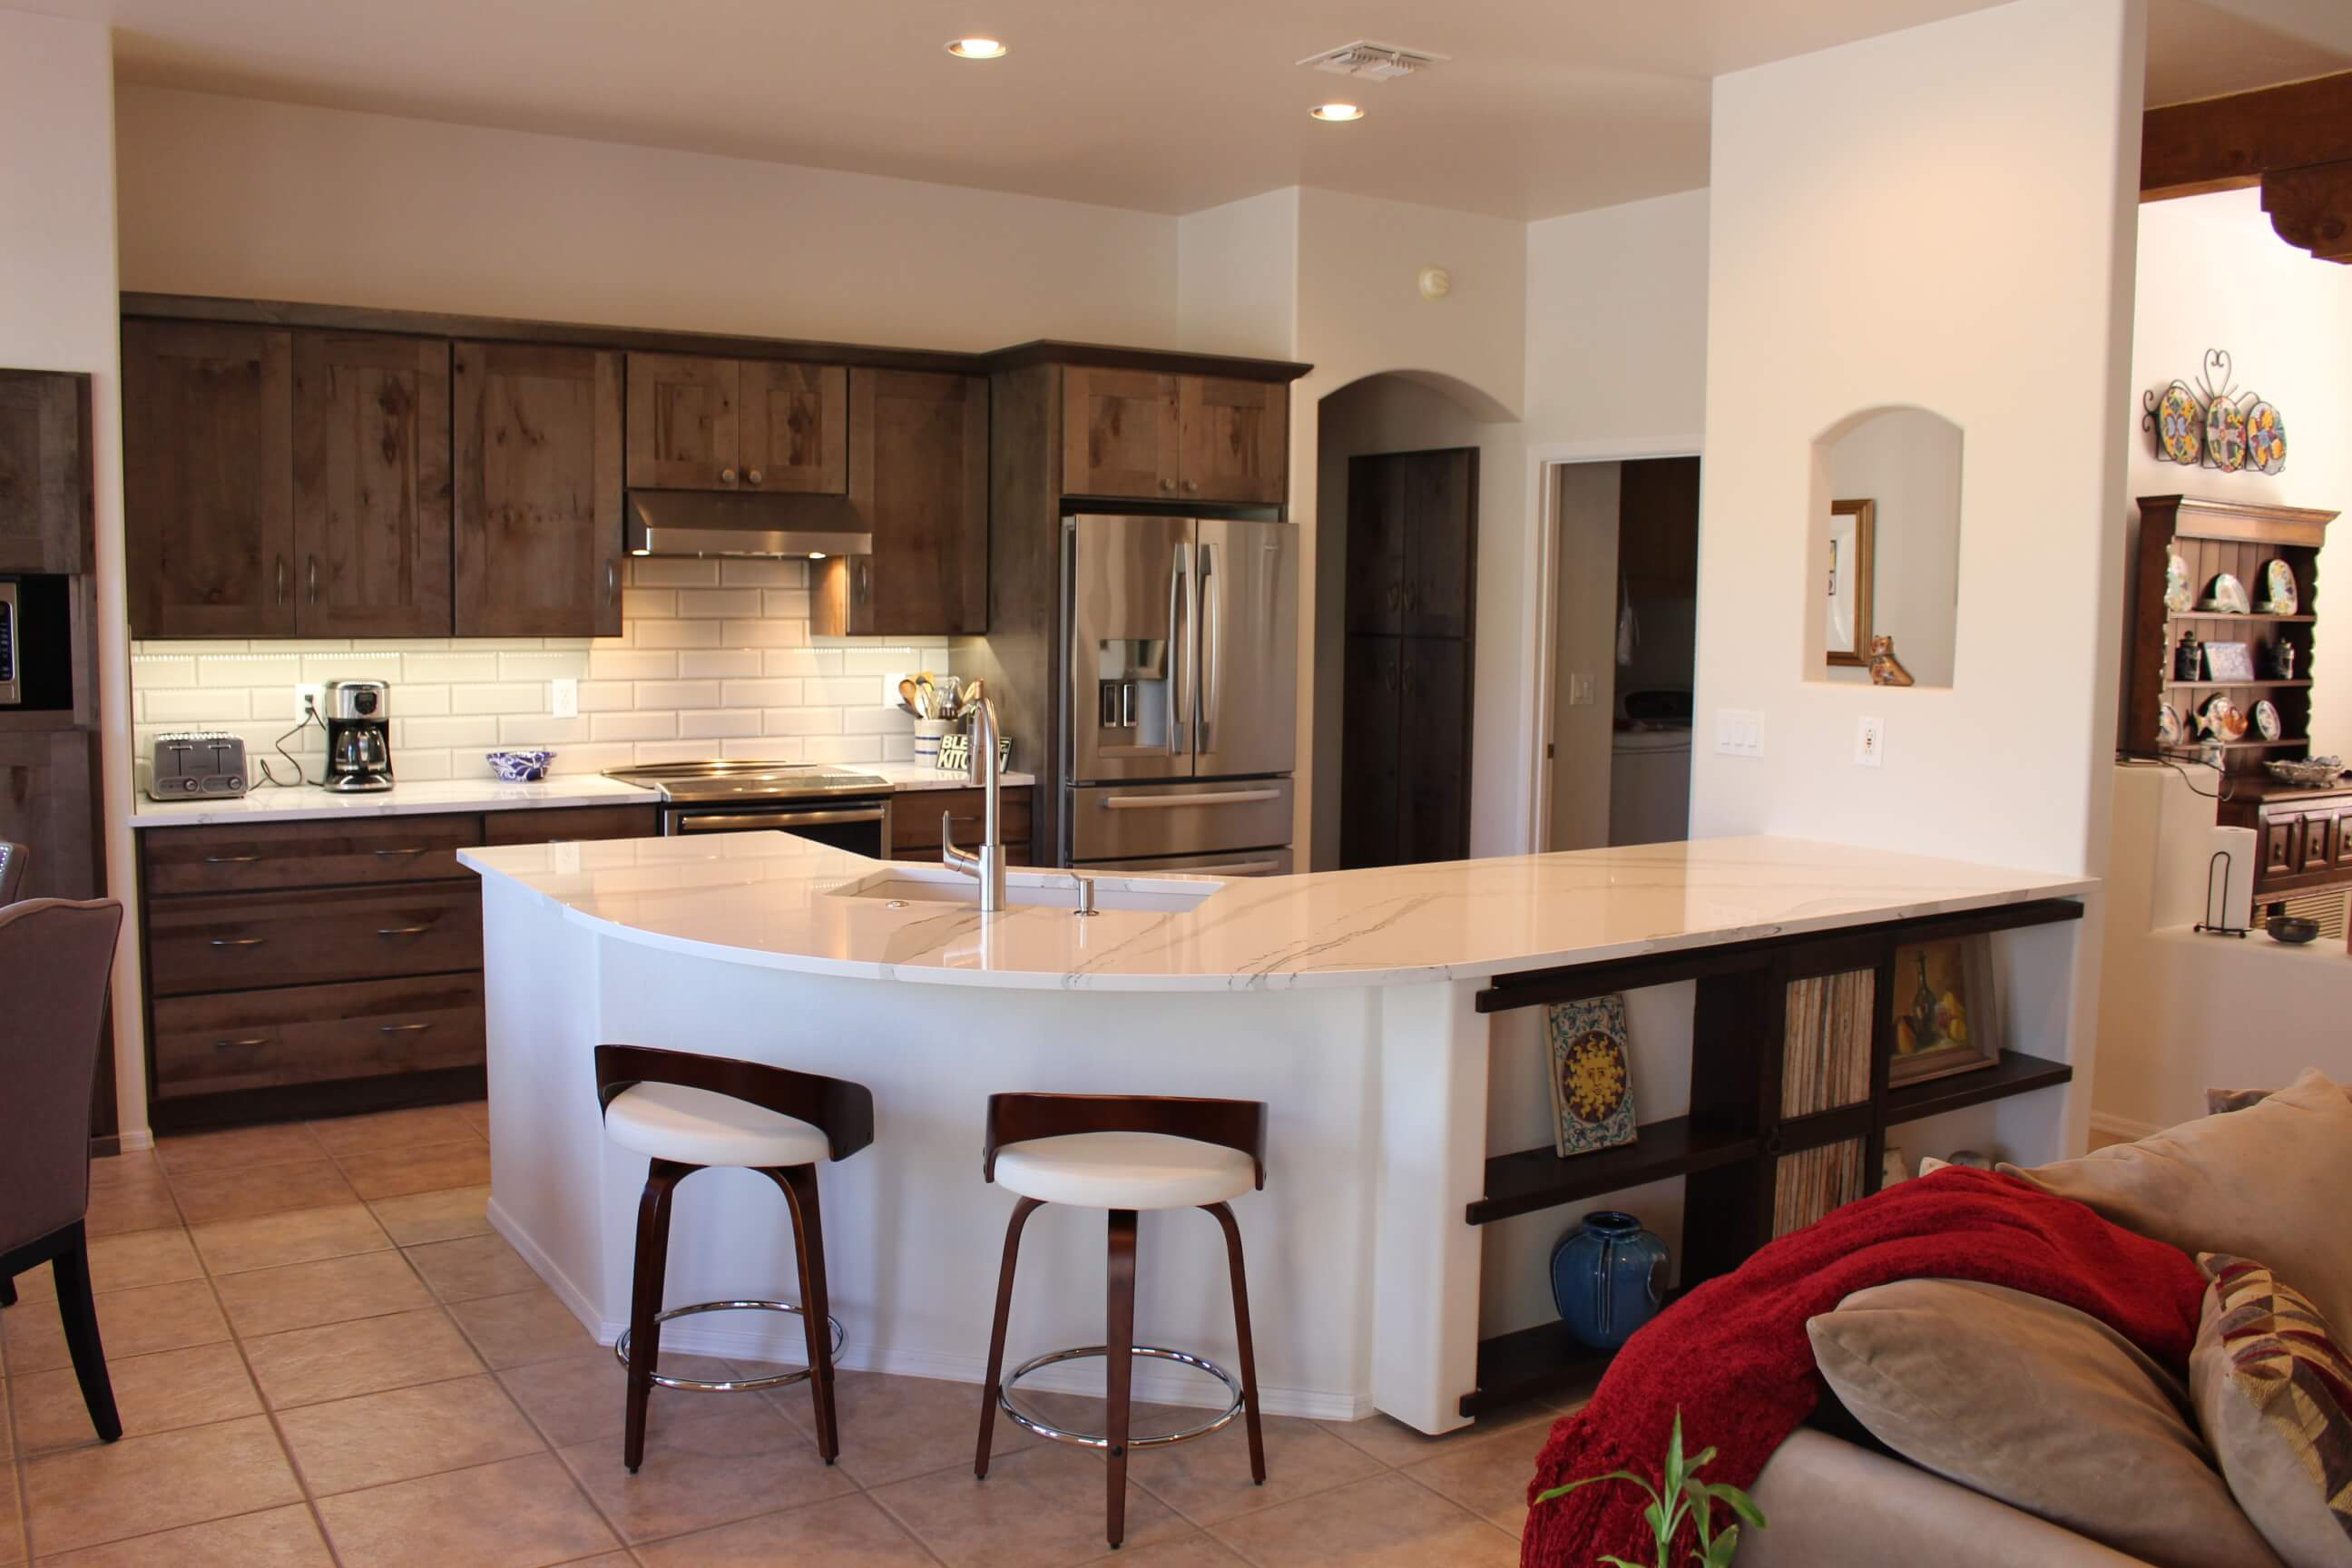 Used kitchen cabinets tucson discount kitchen cabinets for Kitchen cabinets tucson